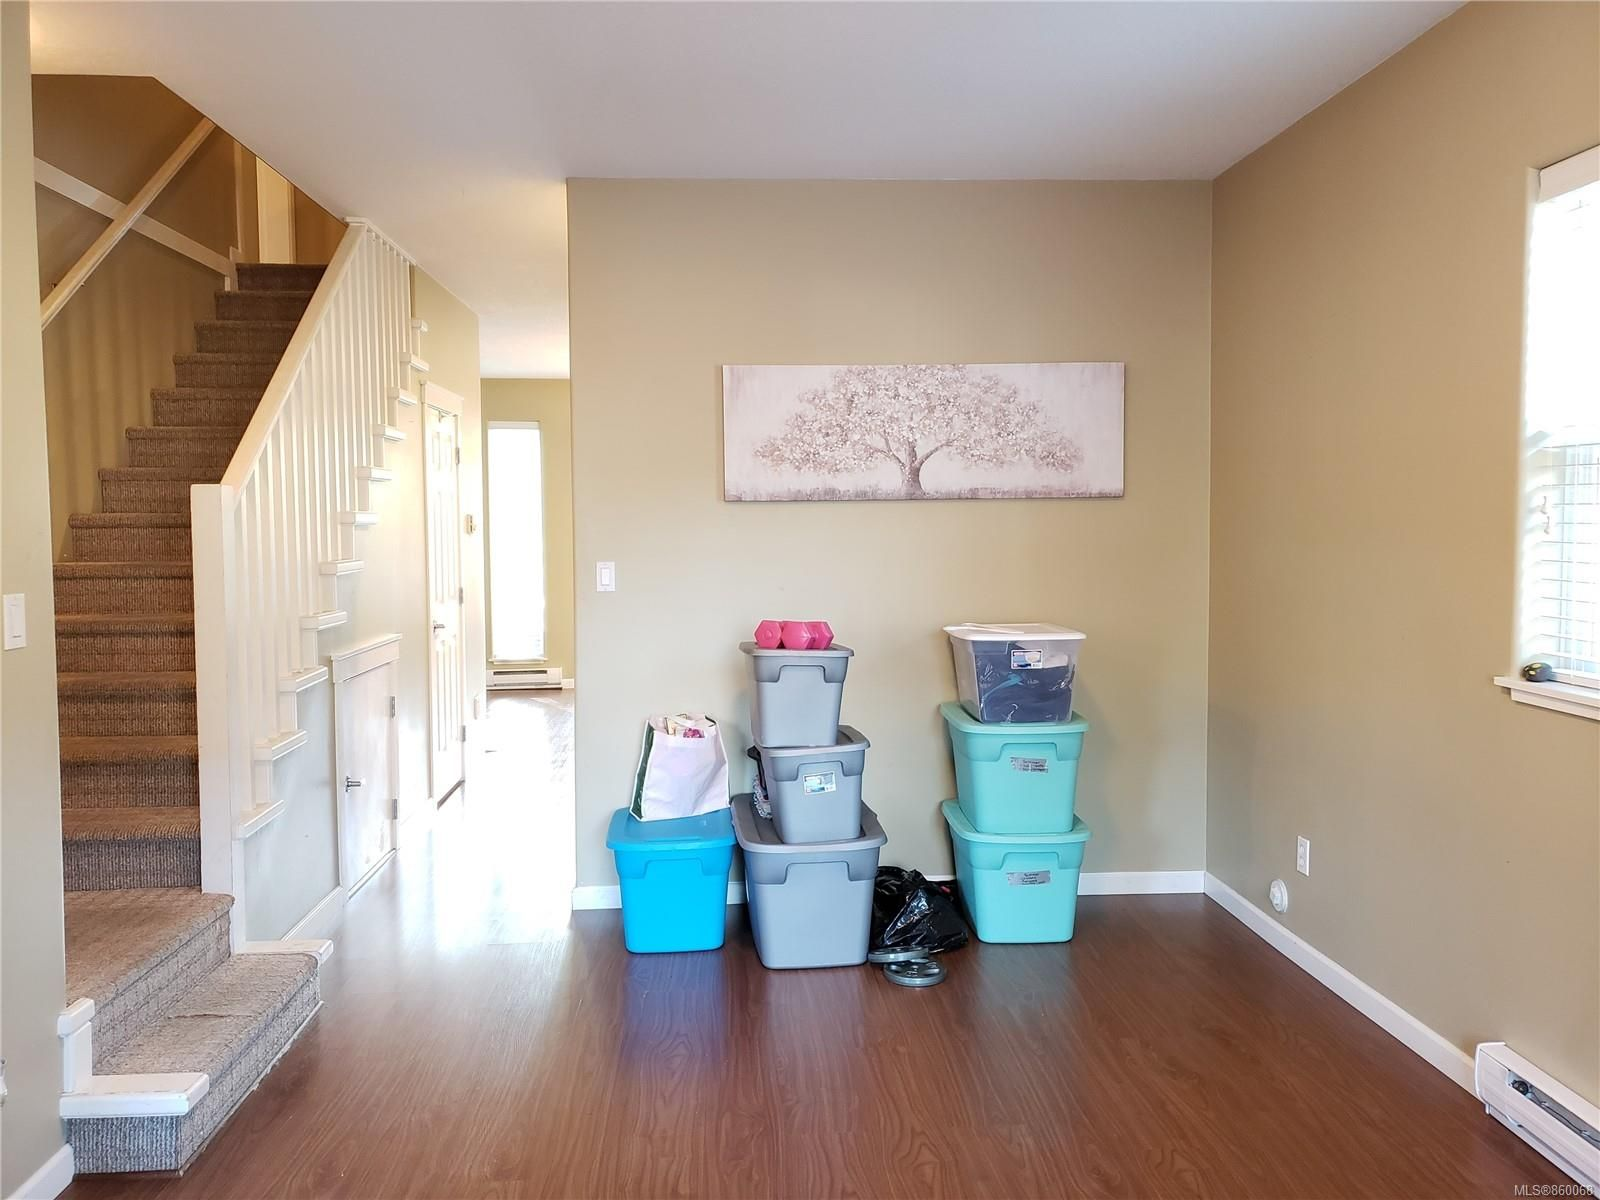 Photo 16: Photos: 105 2787 1st St in Courtenay: CV Courtenay City House for sale (Comox Valley)  : MLS®# 860068